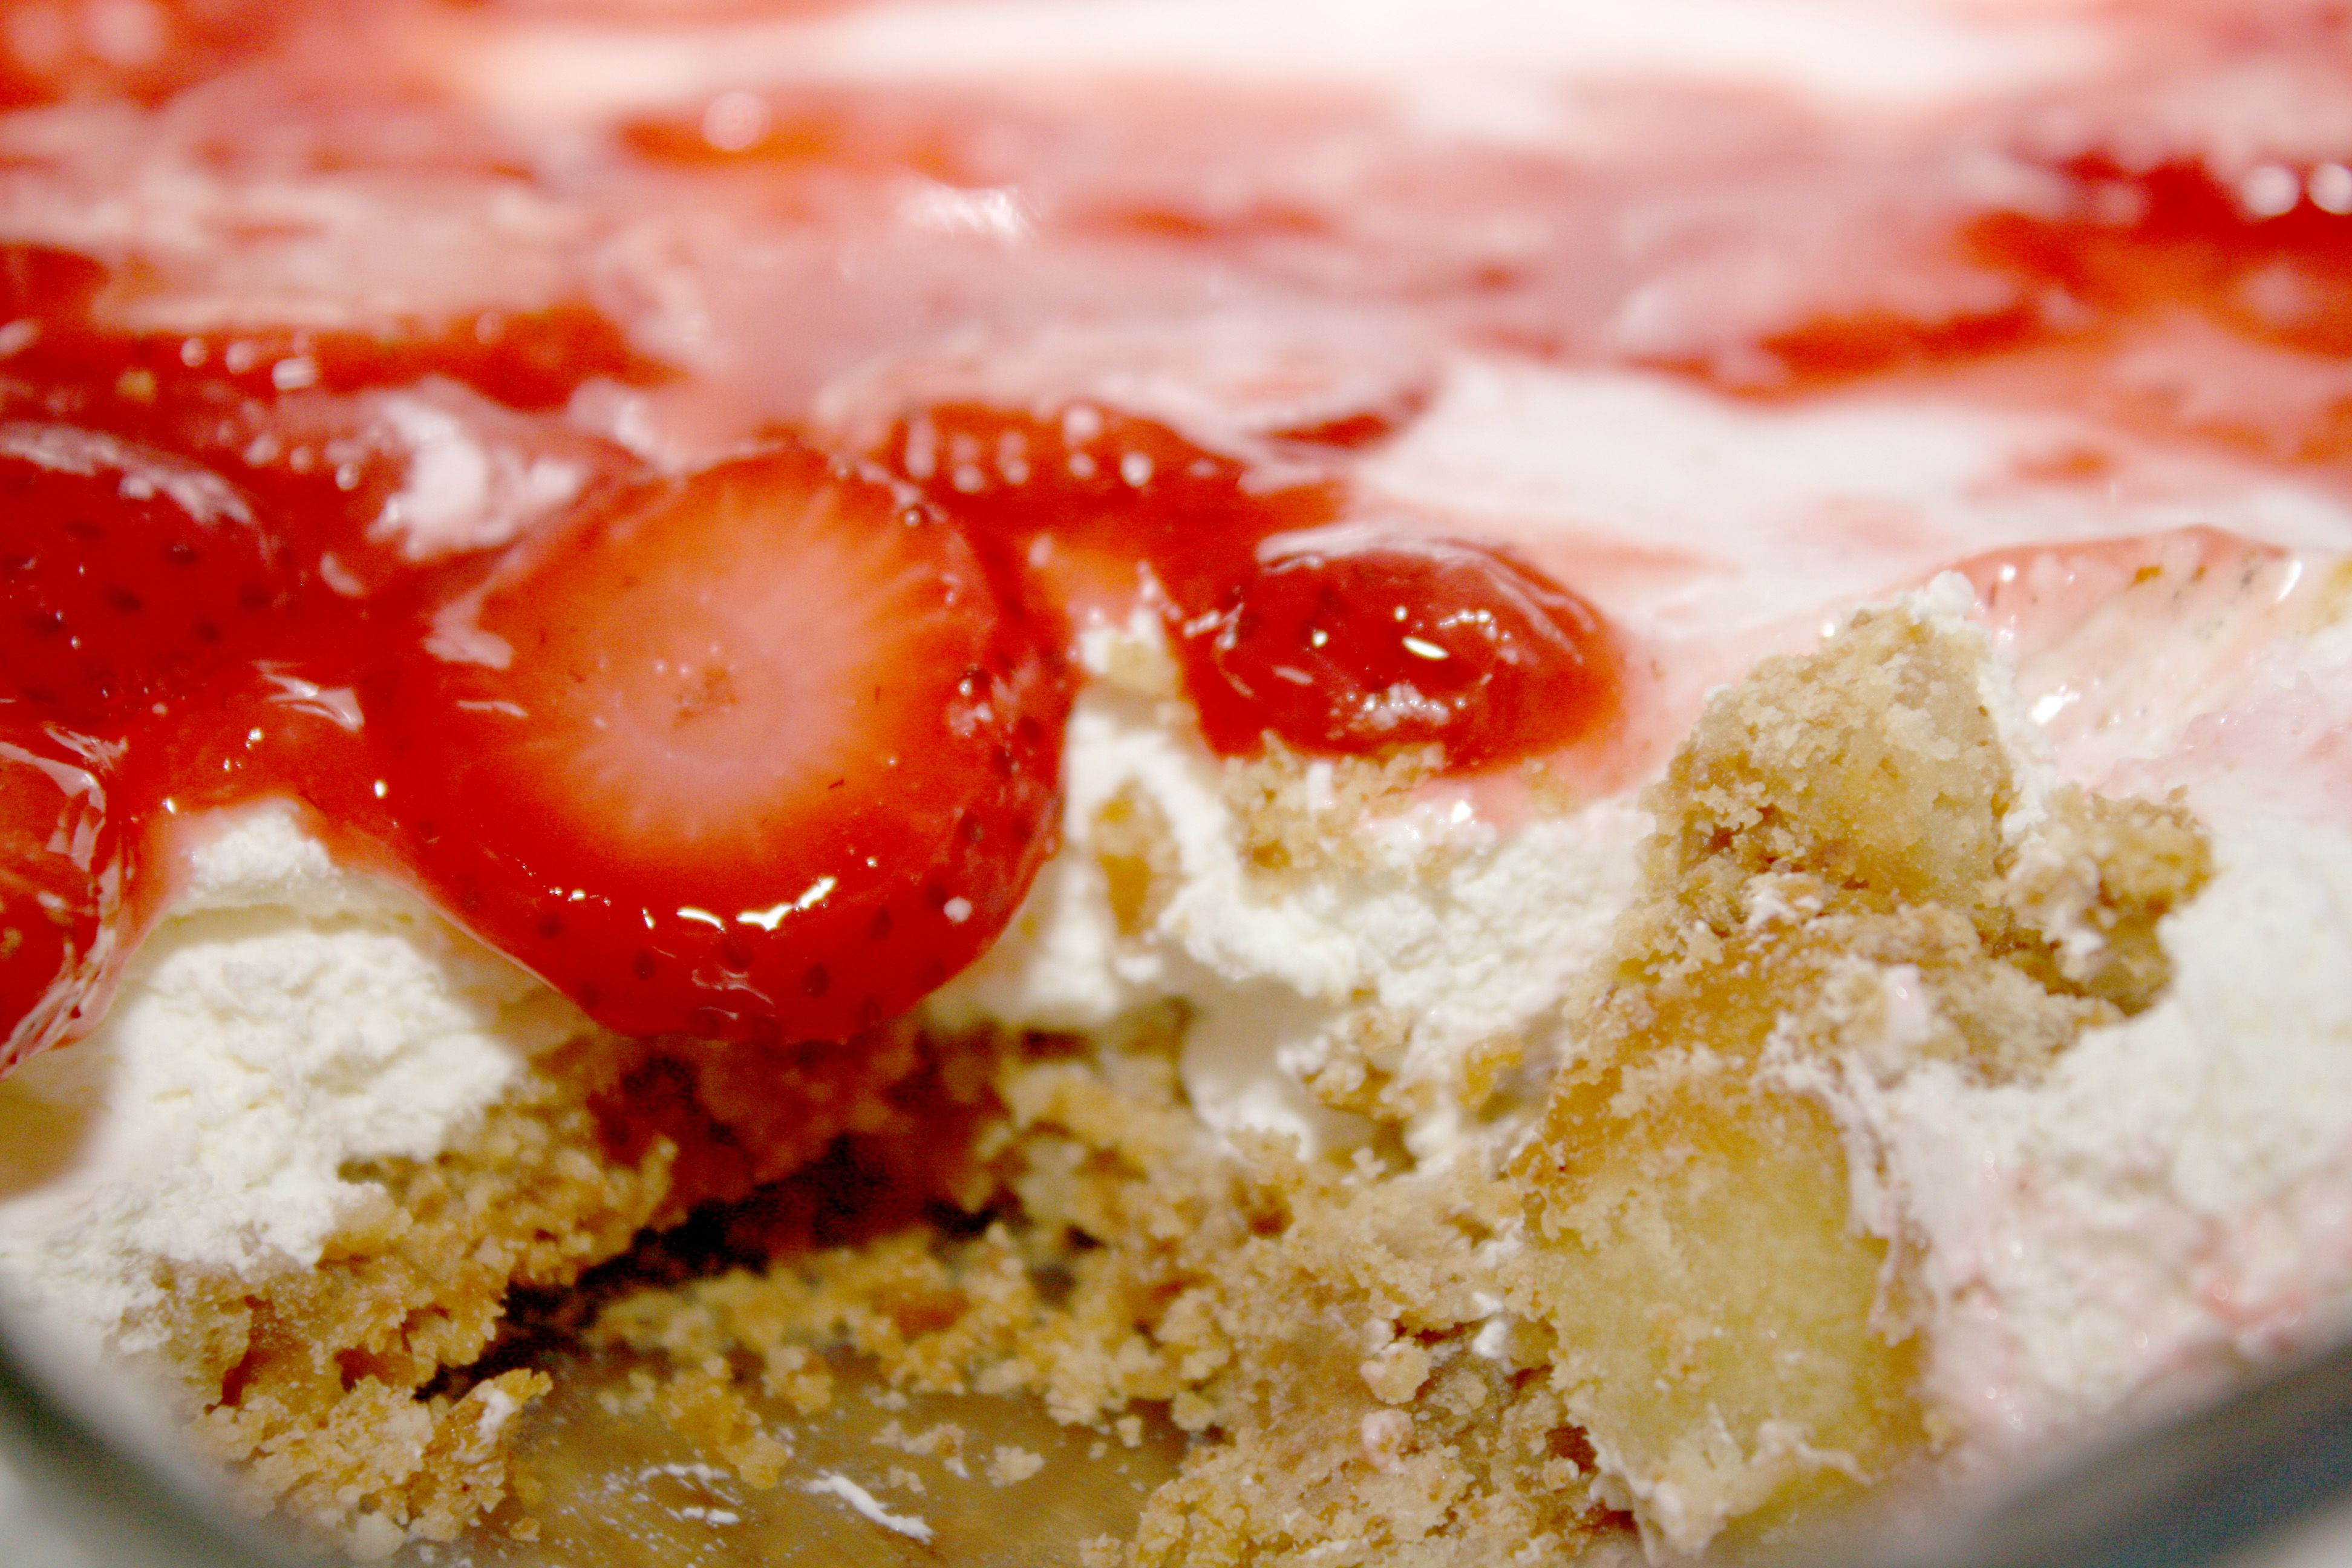 No bake strawberry cream cheese pie | Recipes and cooking | Pinterest